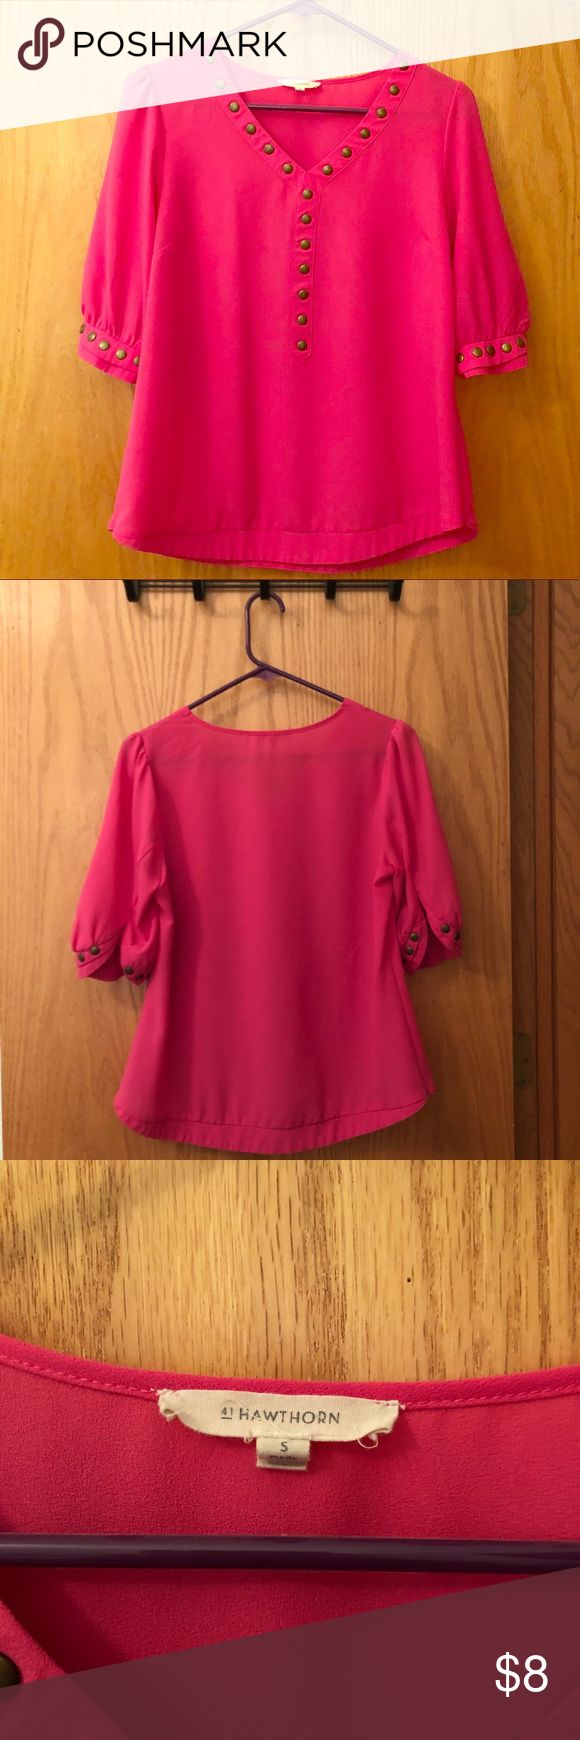 41 Hawthorn Fuchsia Blouse - Small - Flowy & Light Perfect spring blouse - Nice and loose with copper tack edging. Got this in a Stitch Fix a while back. The top is in great condition and ready for your spring wardrobe! 41 Hawthorn Tops Blouses